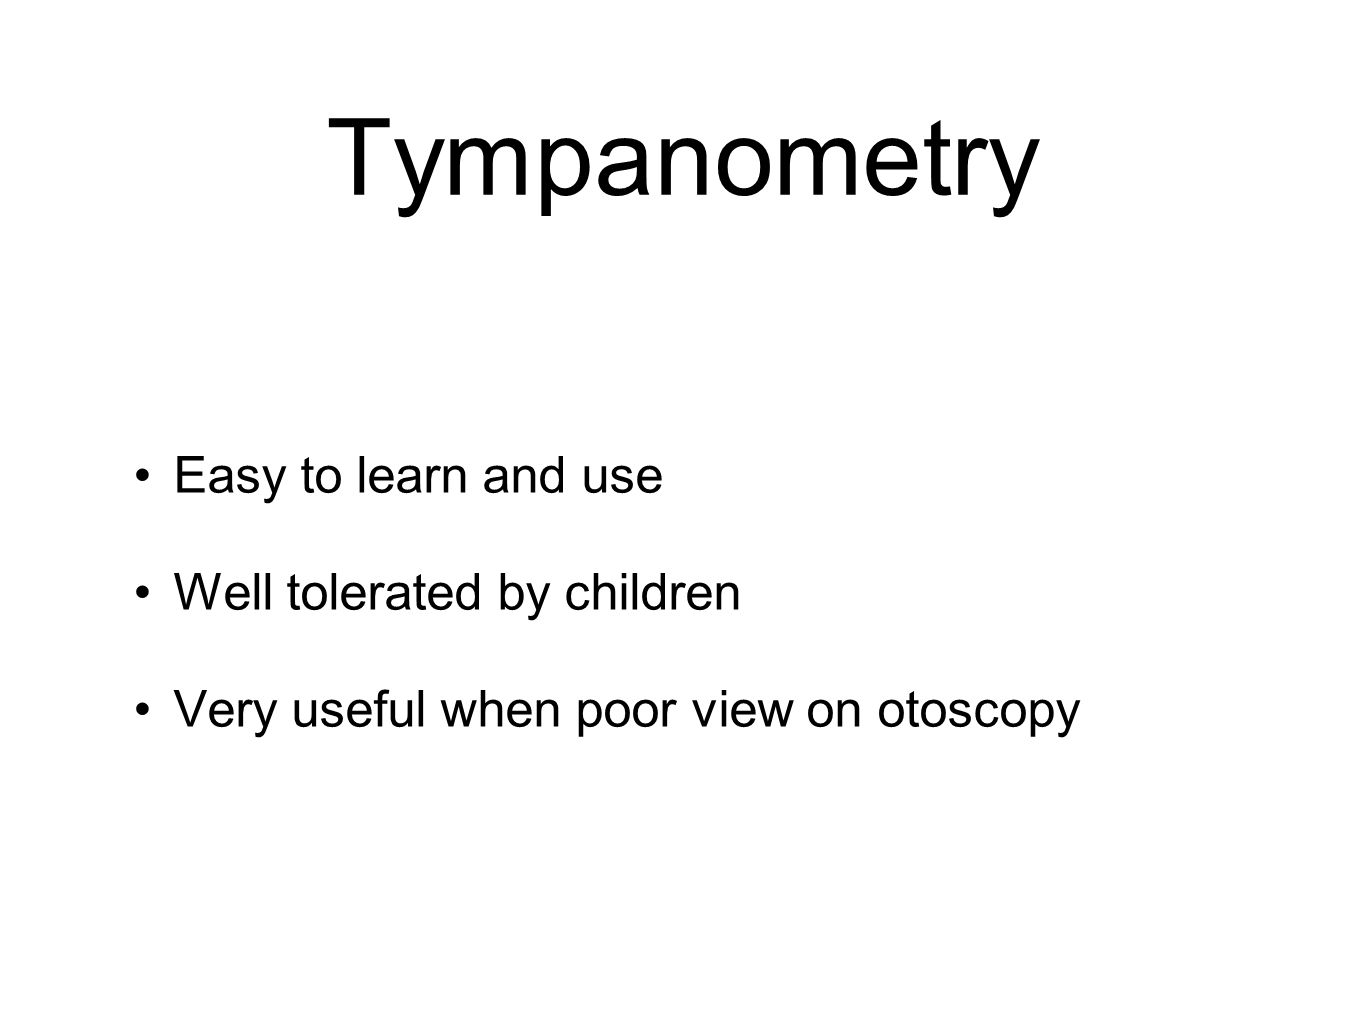 Tympanometry Easy to learn and use Well tolerated by children Very useful when poor view on otoscopy